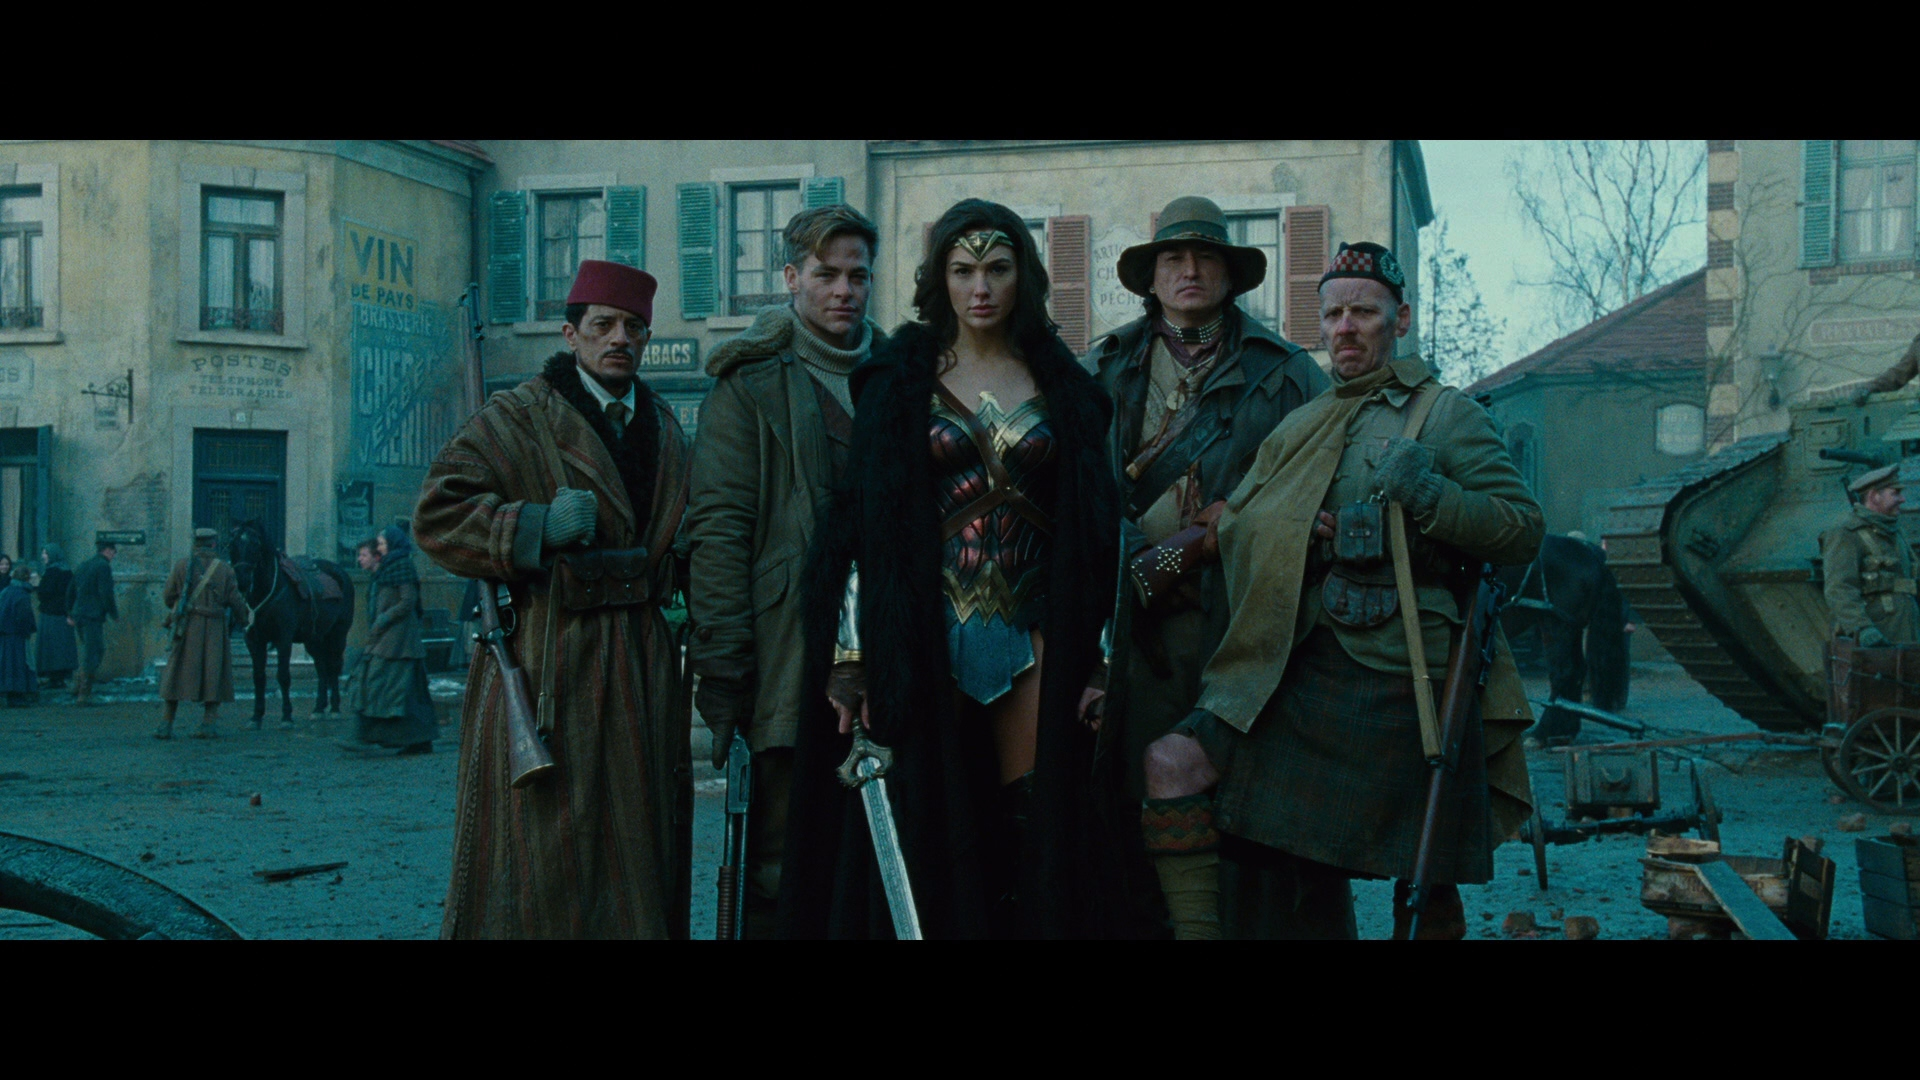 The 15 Unaltered Images Below Represent Blu Ray For An Additional 25 Wonder Woman Screenshots Early Access To All Screens Plus 7000 Already In